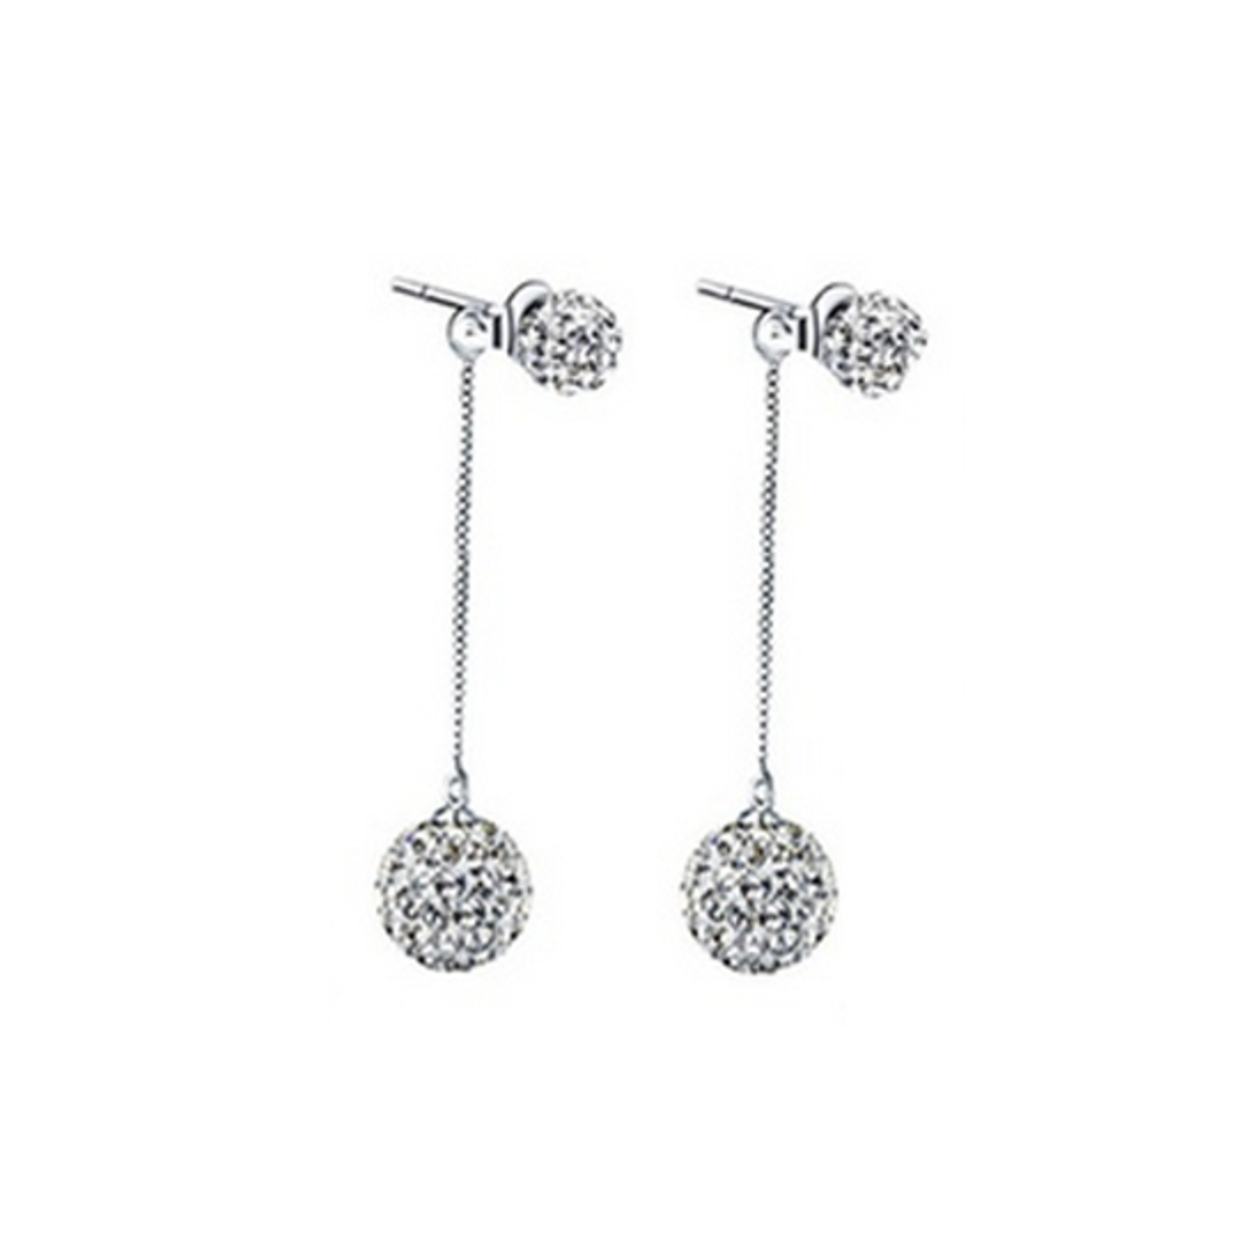 Sterling Silver Long Shambala Studs Made With Crystals From Swarovski